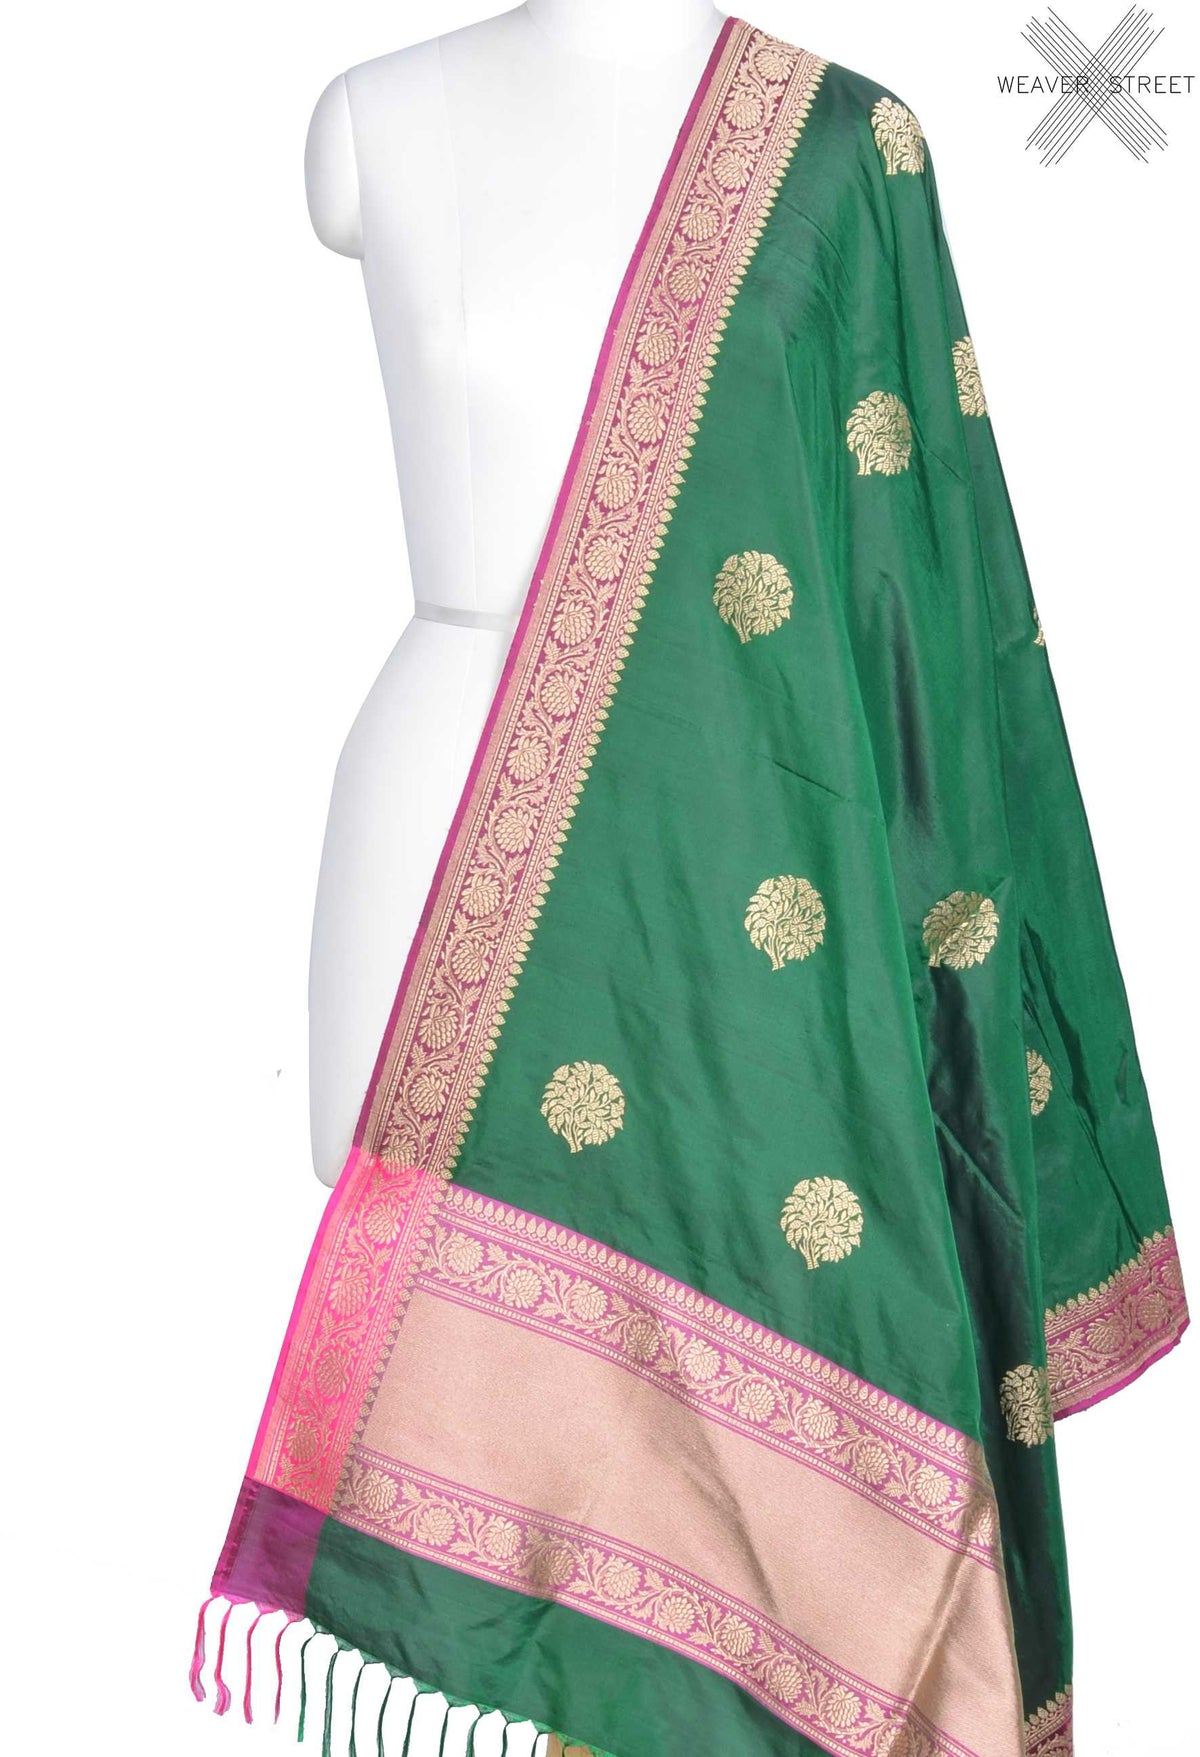 Green Katan Silk Banarasi Dupatta with tree motifs (1) Main